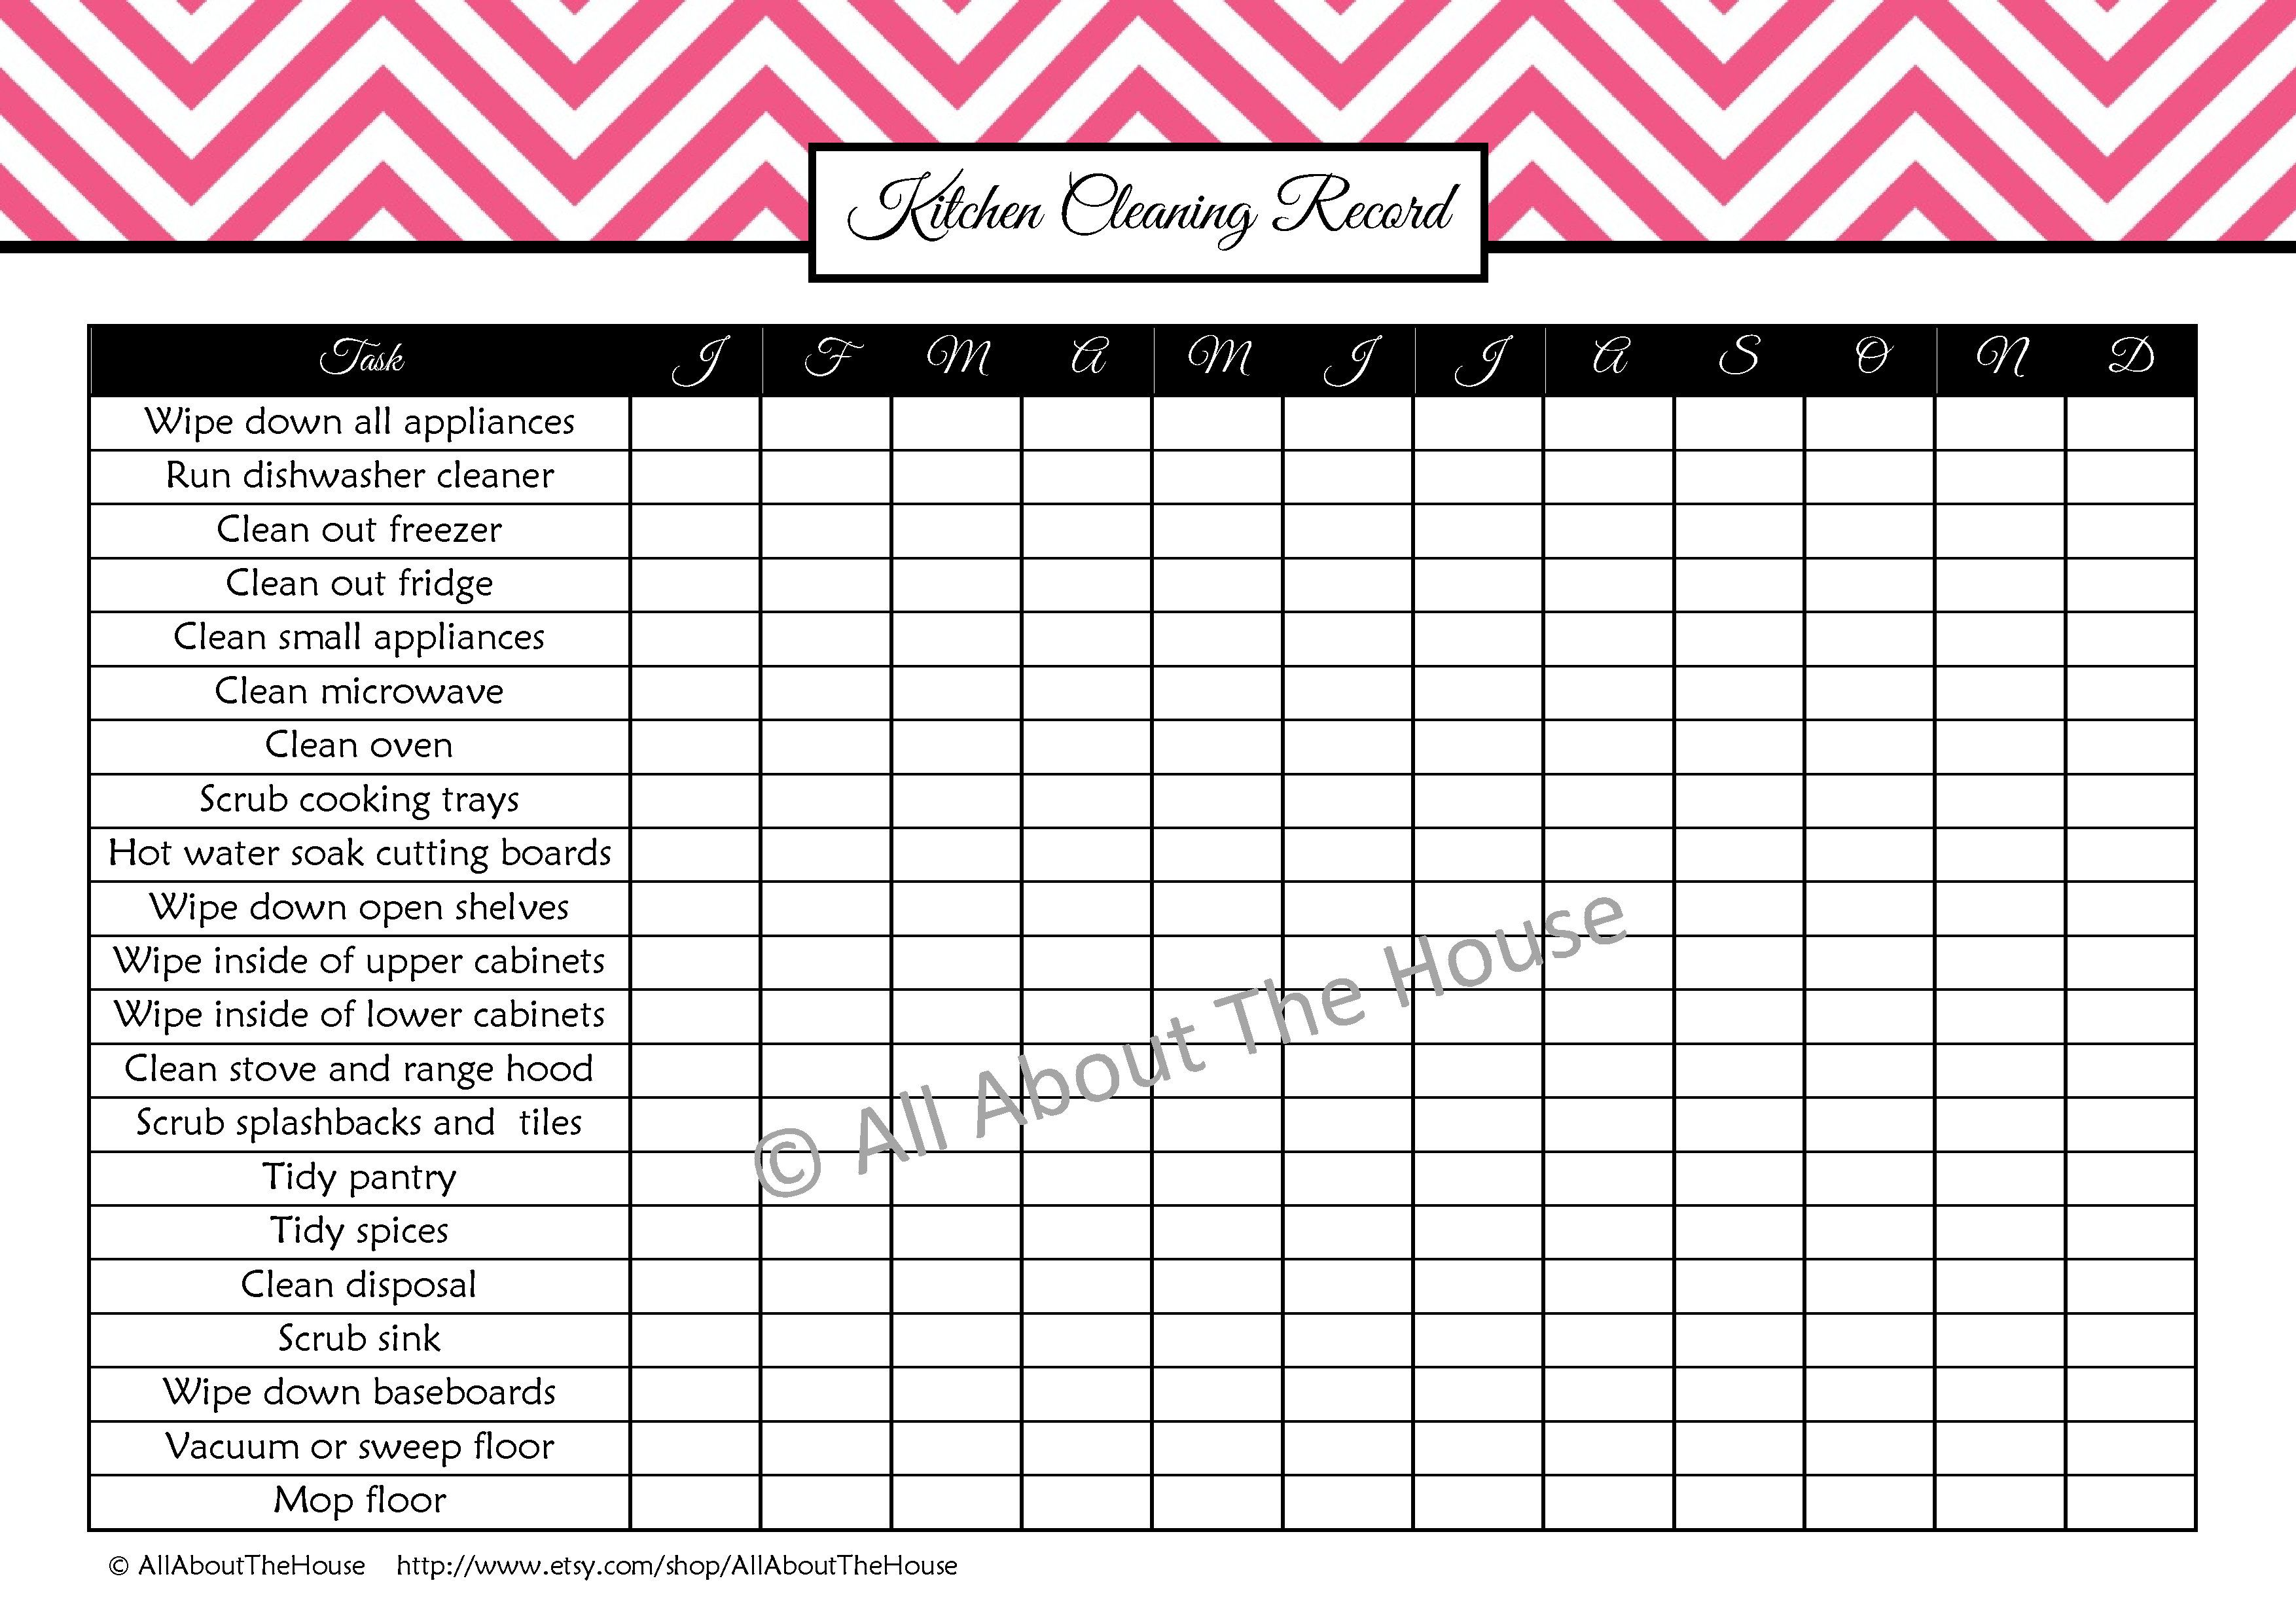 Kitchen Cleaning Record From The Cleaning Set Available